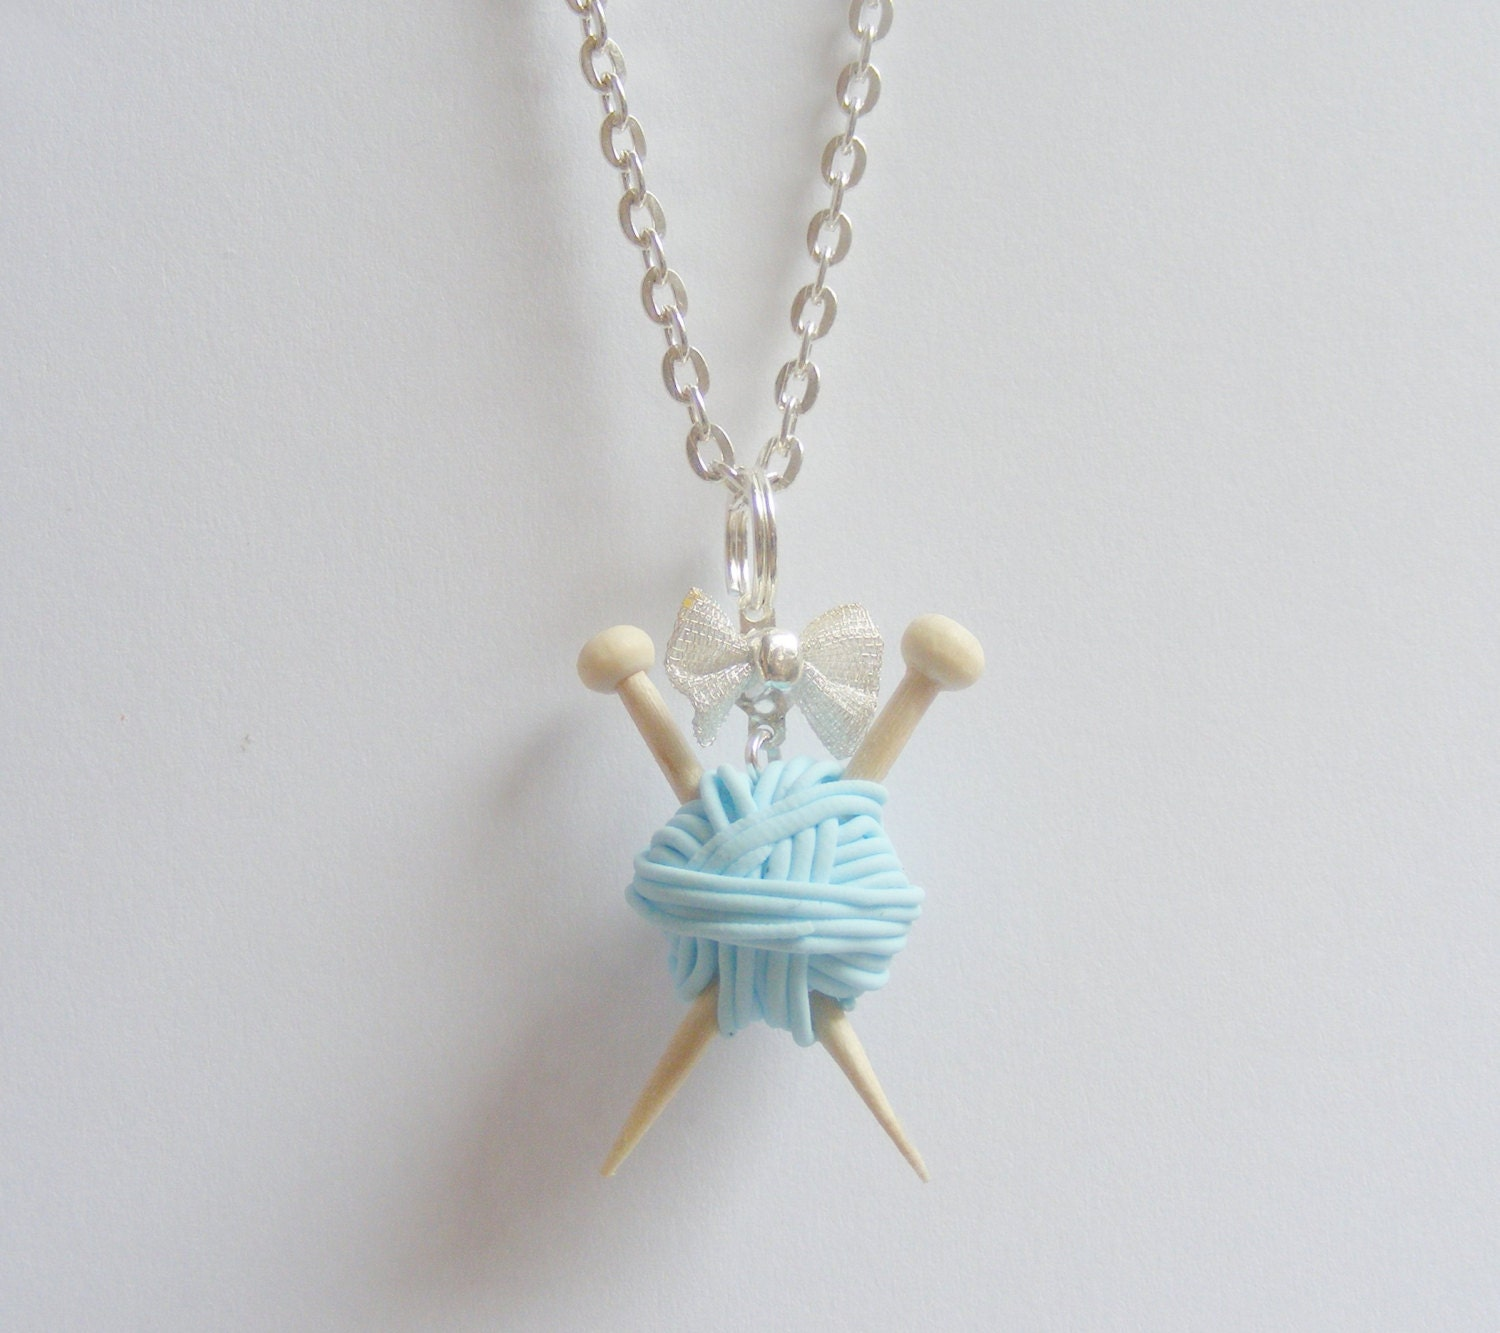 Knitting Needle Gauge Necklace : Knitting needles and wool necklace by